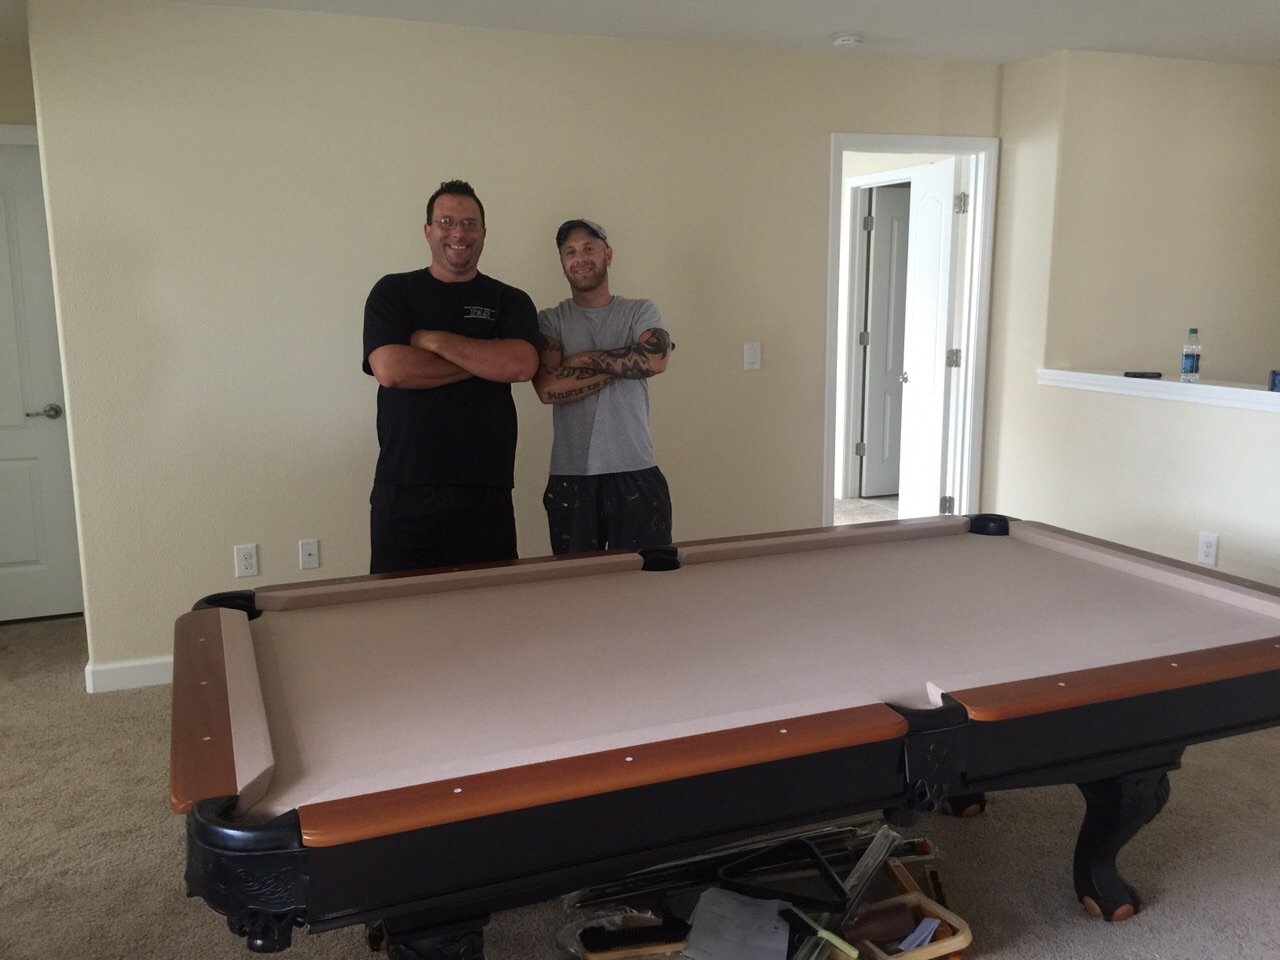 Professional Assembly Services Blog - How to move a pool table upstairs